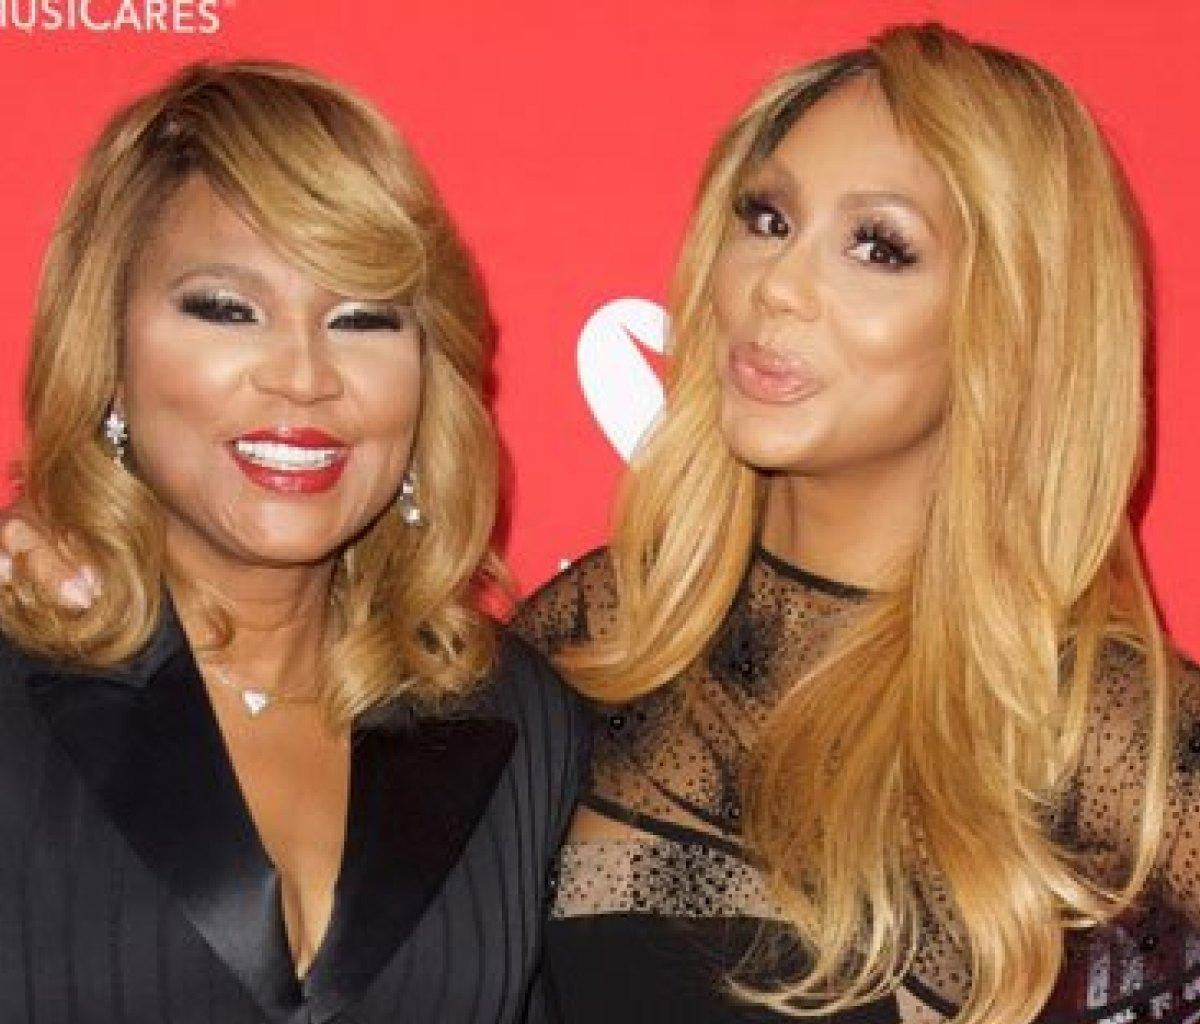 Tamar Braxton Gushes Over Her Mom, Evelyn Braxton For Mother's Day - See Her Message Here